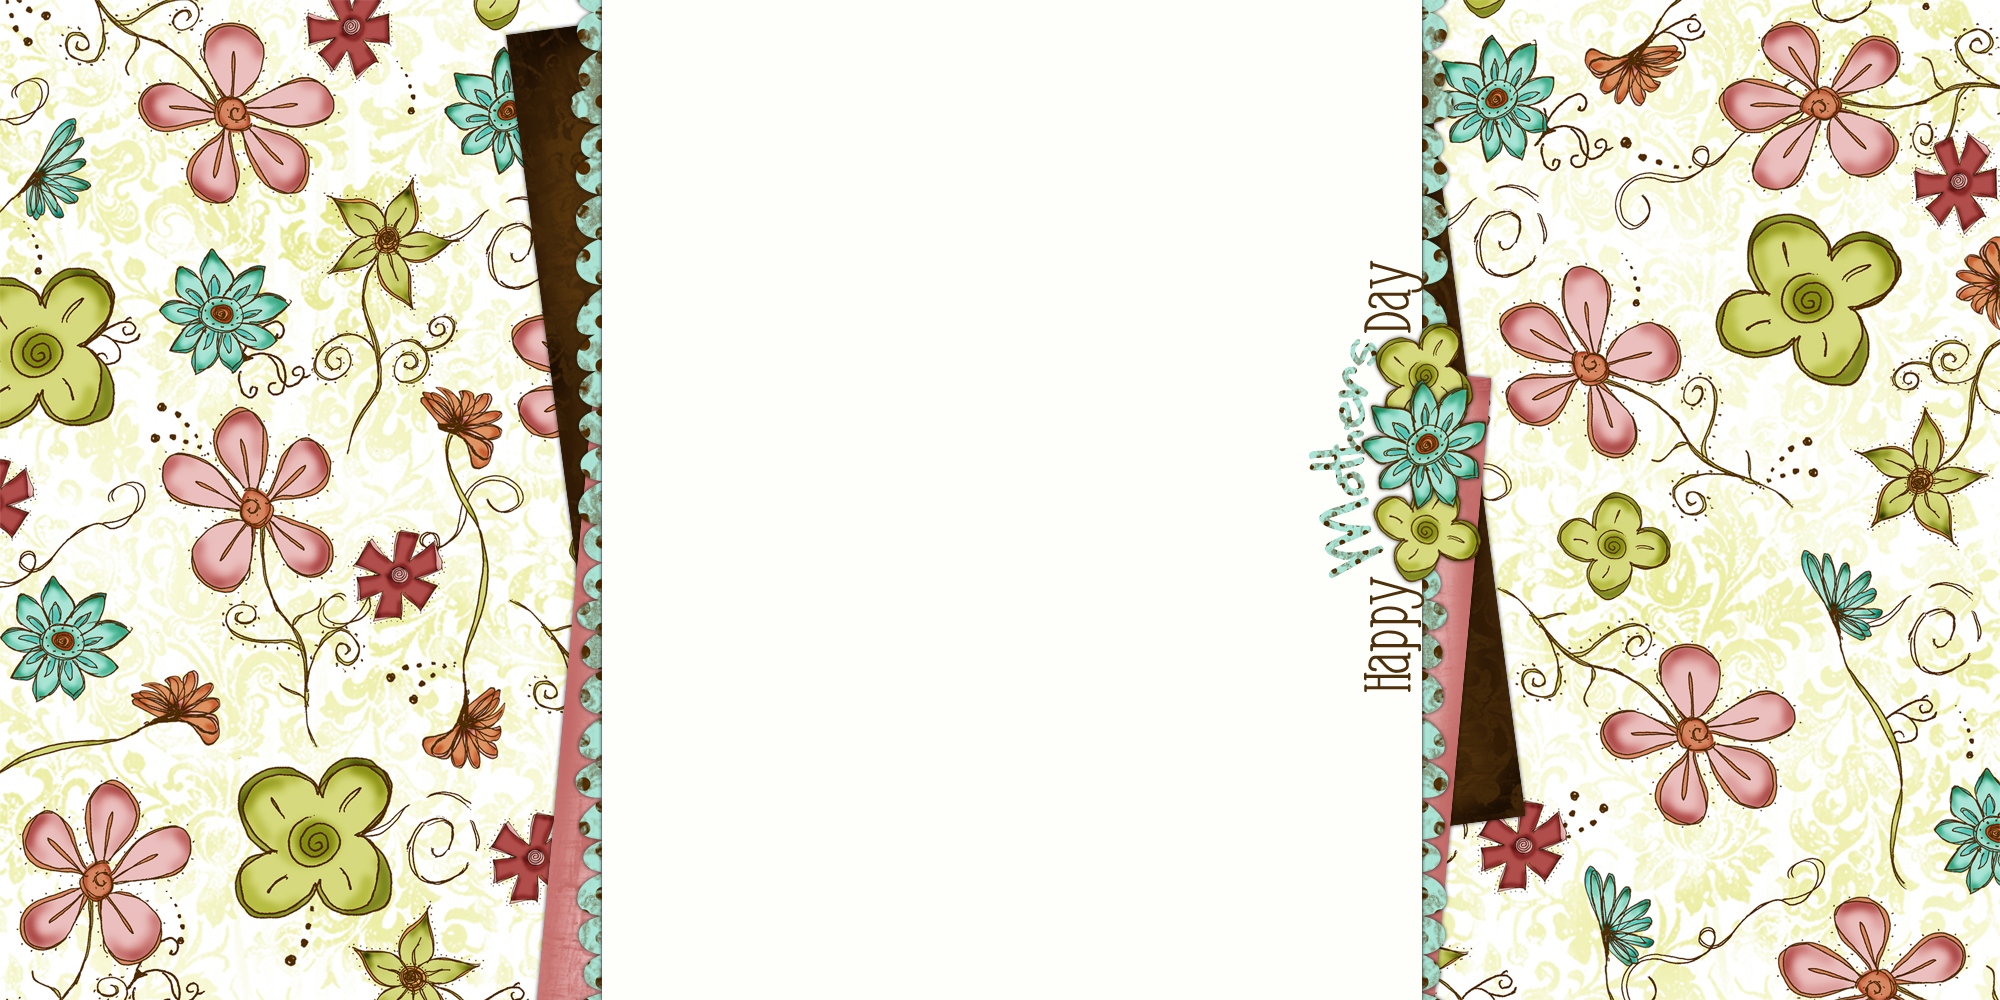 Mothers Day Backgrounds For Powerpoint